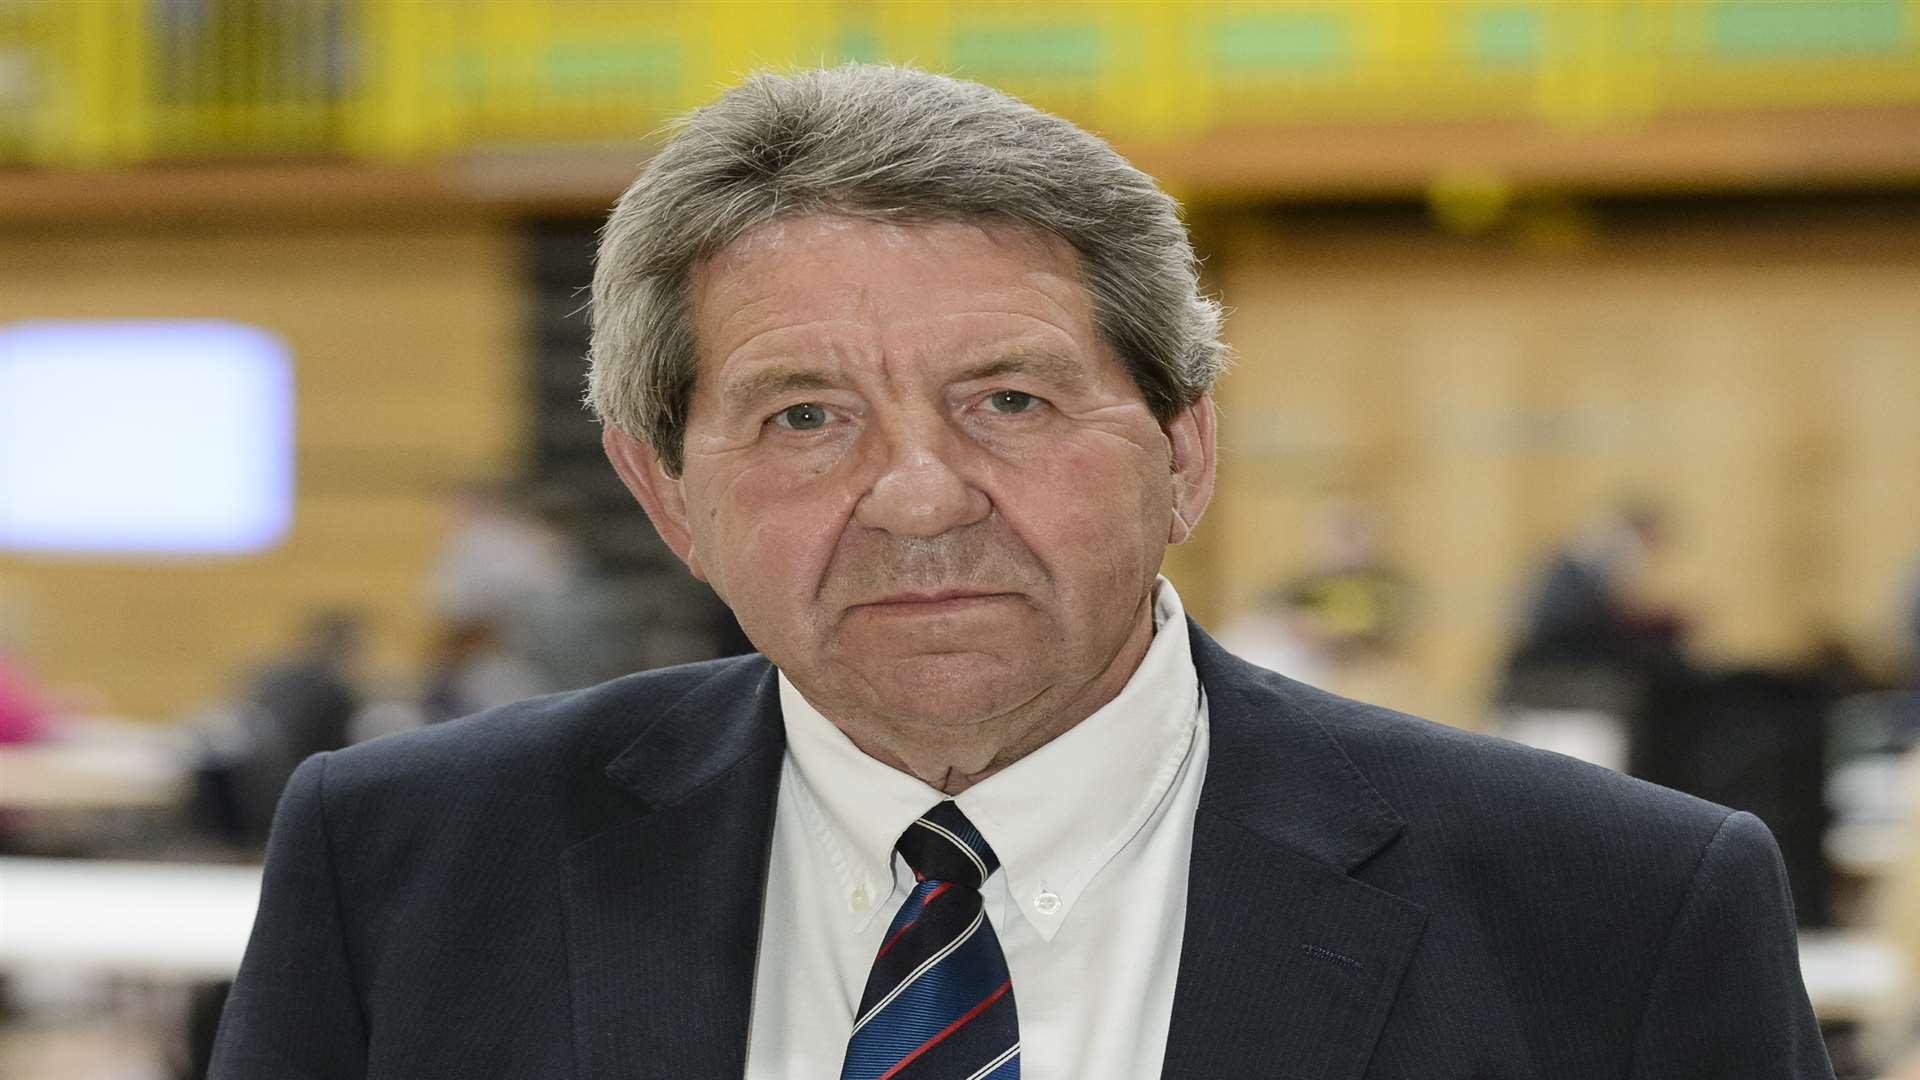 Sittingbourne and Sheppey MP Gordon Henderson